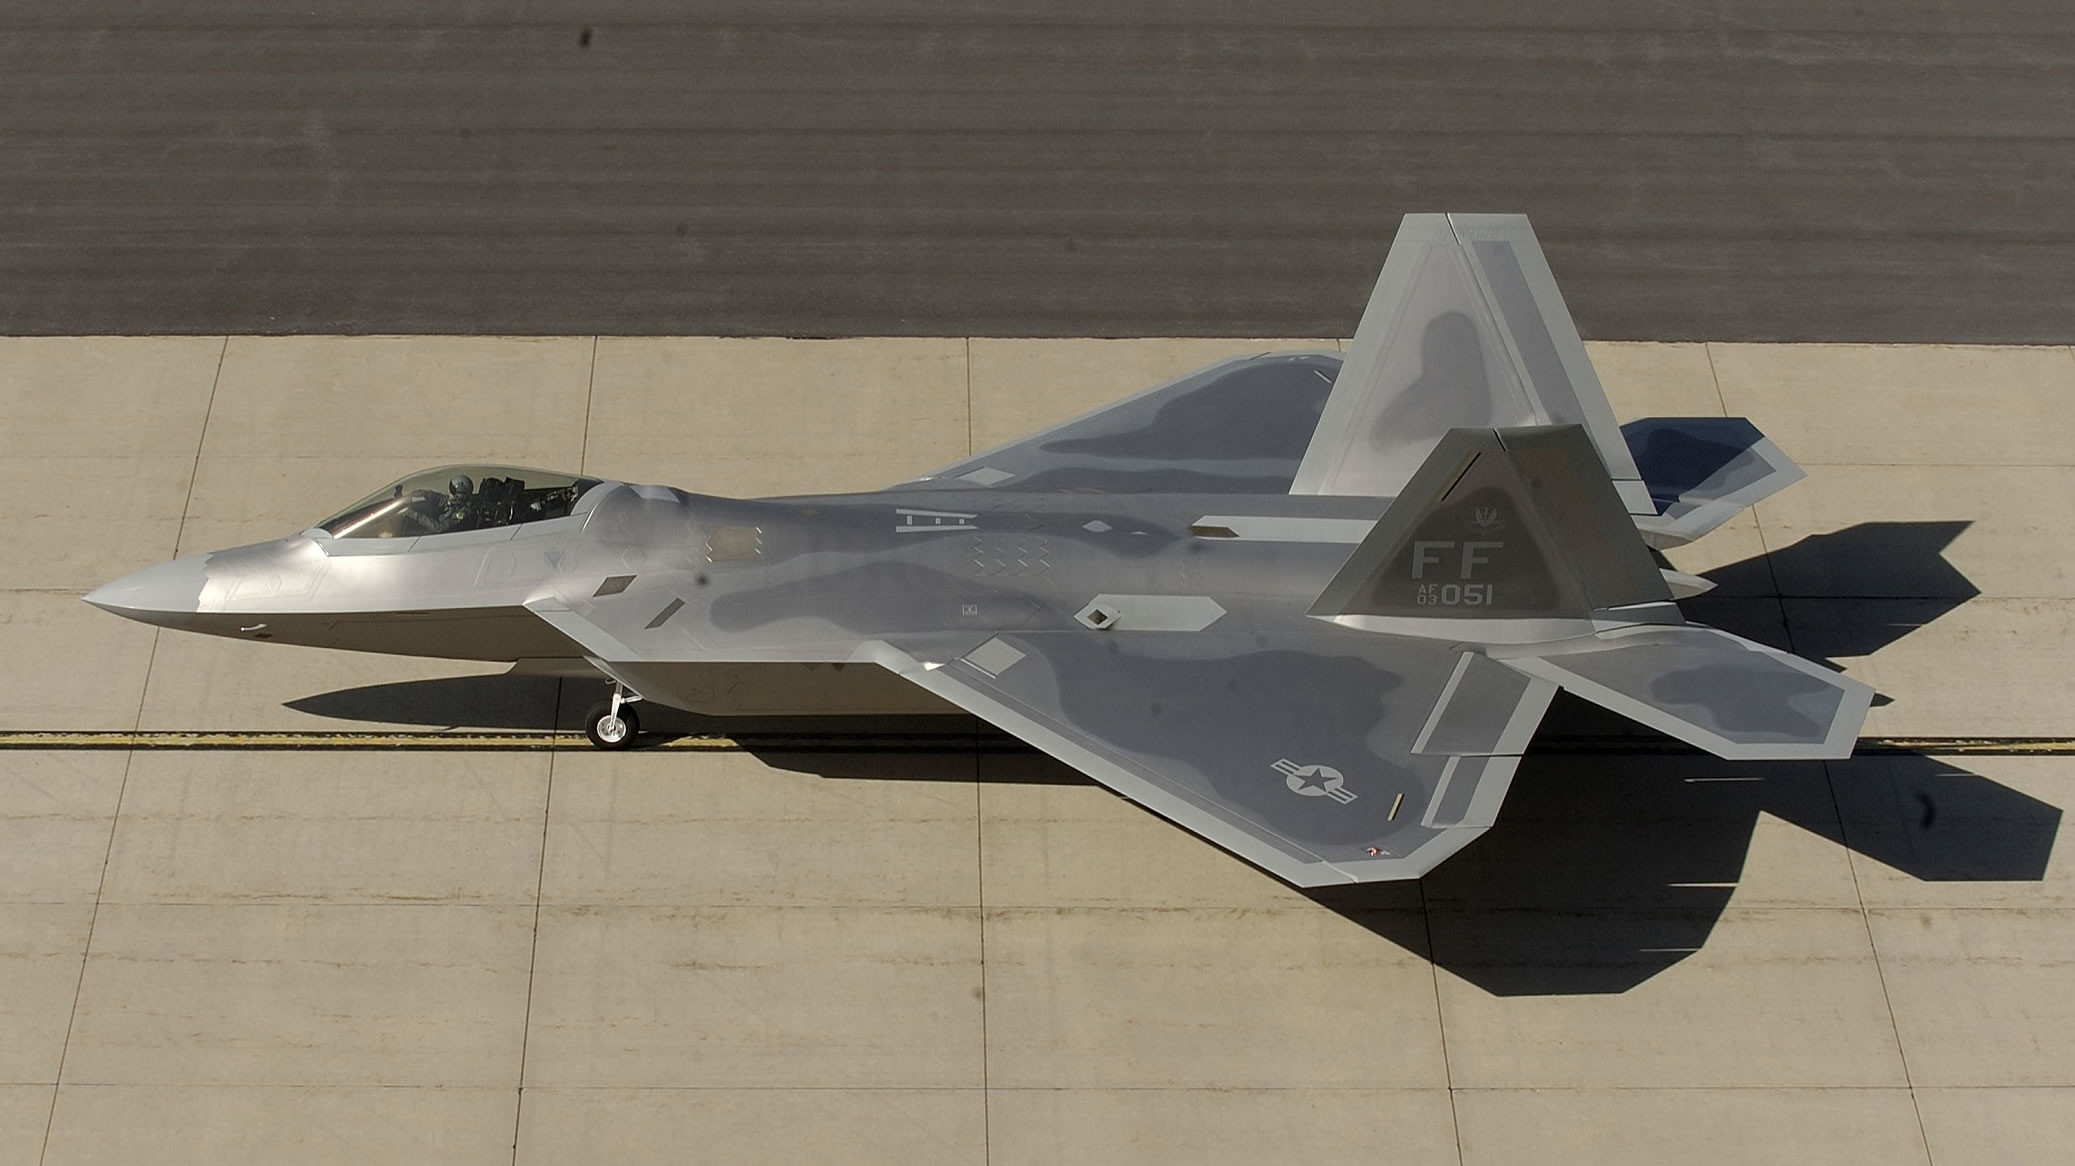 2075x1166 ... F-22 Raptor On Runway